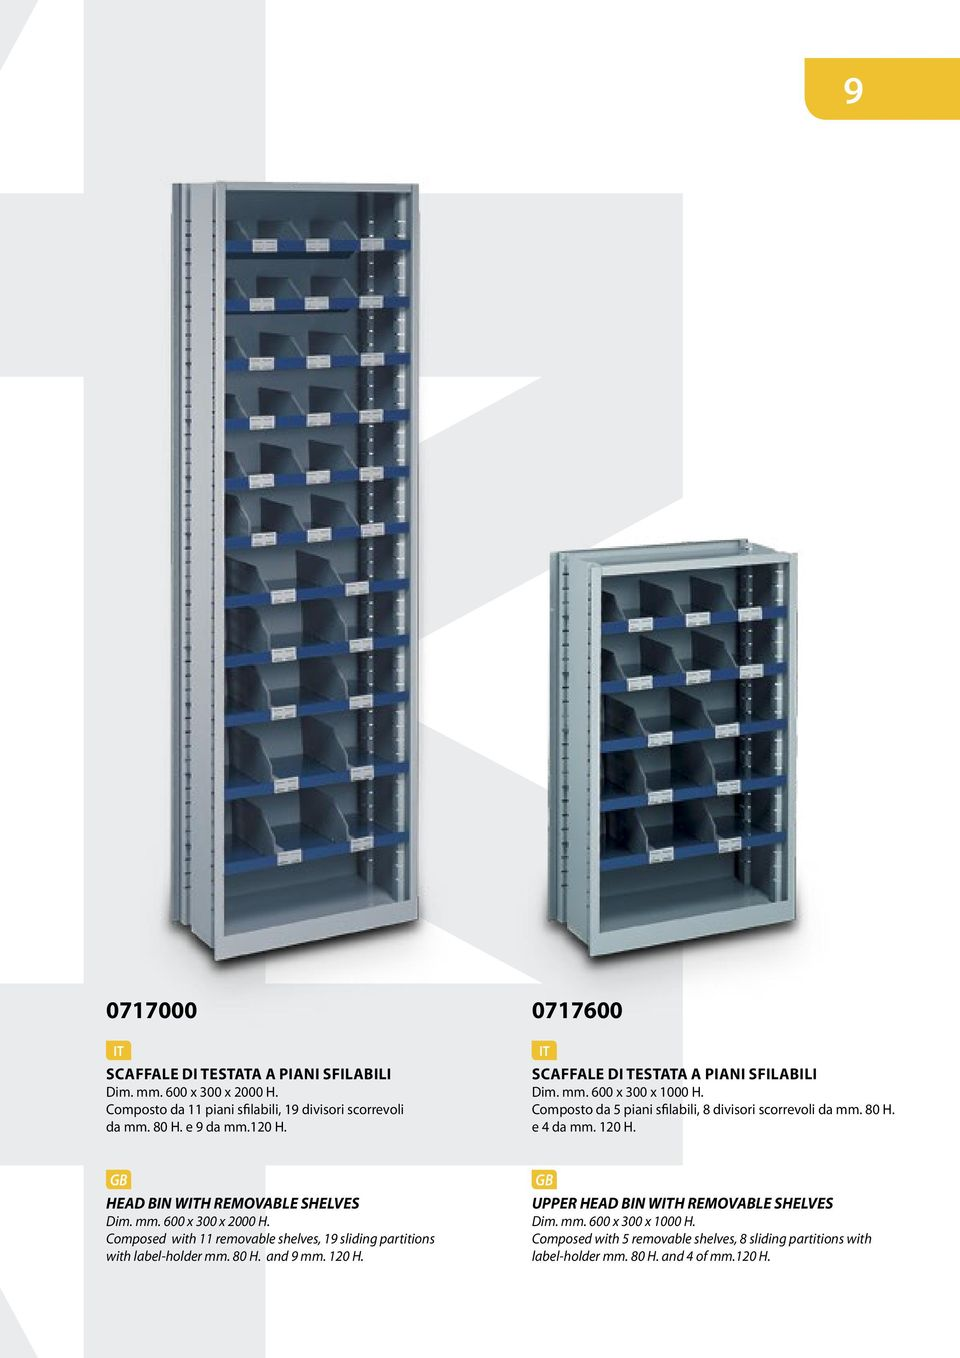 HEAD BIN WH REMOVABLE SHELVES Dim. mm. 600 x 300 x 2000 H. Composed with 11 removable shelves, 19 sliding partitions with label-holder mm. 80 H. and 9 mm. 120 H.